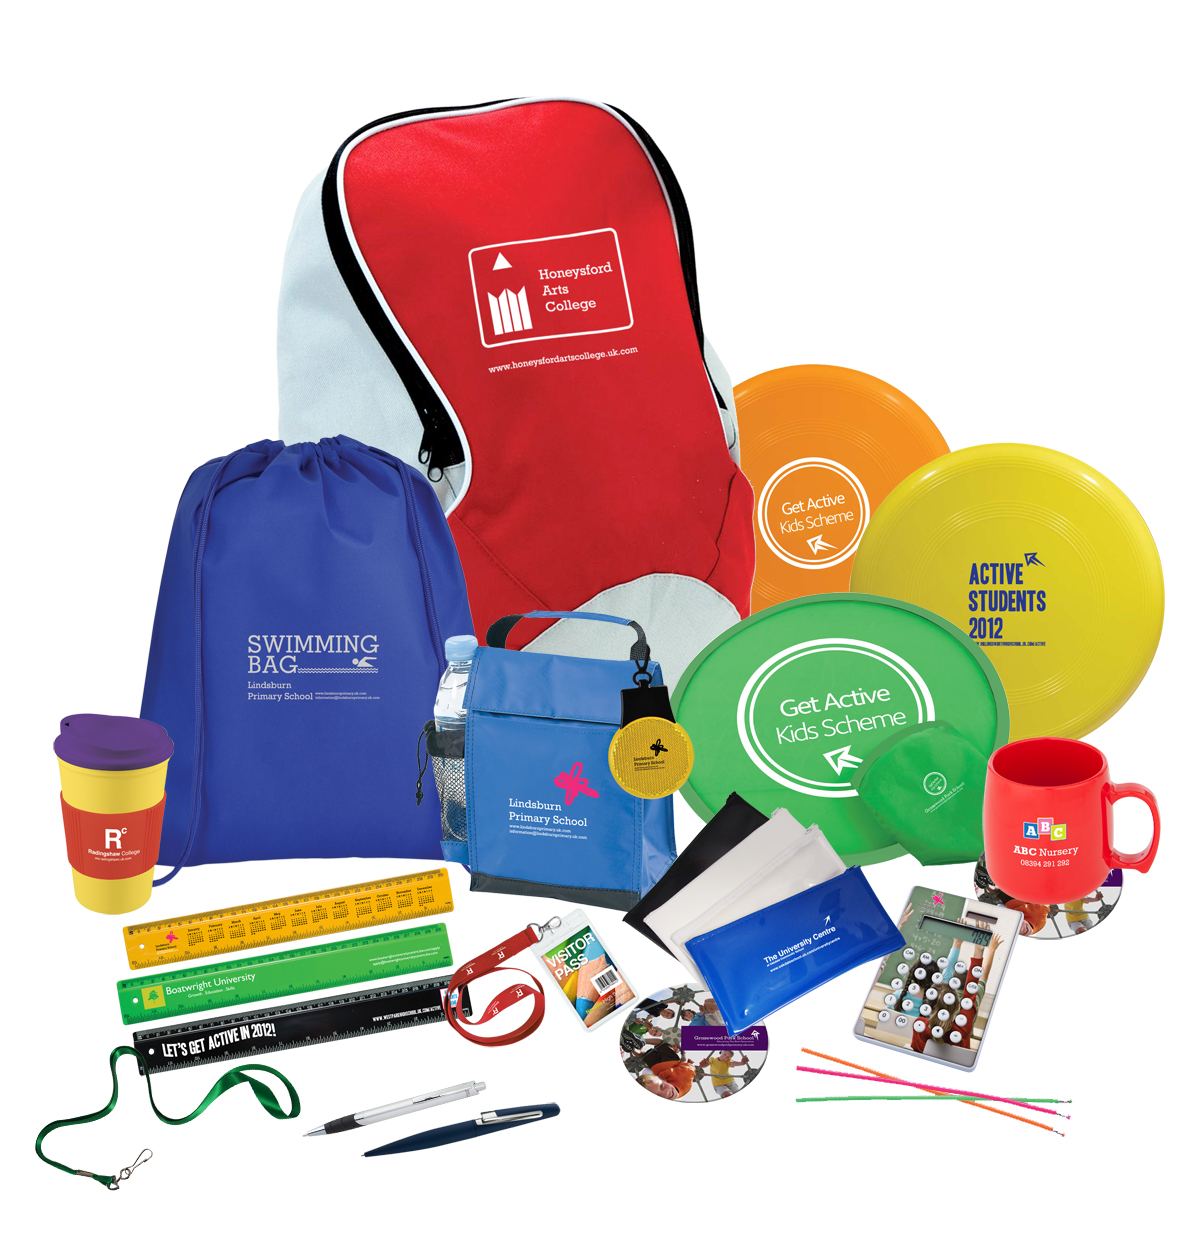 how to sell promotional products to schools